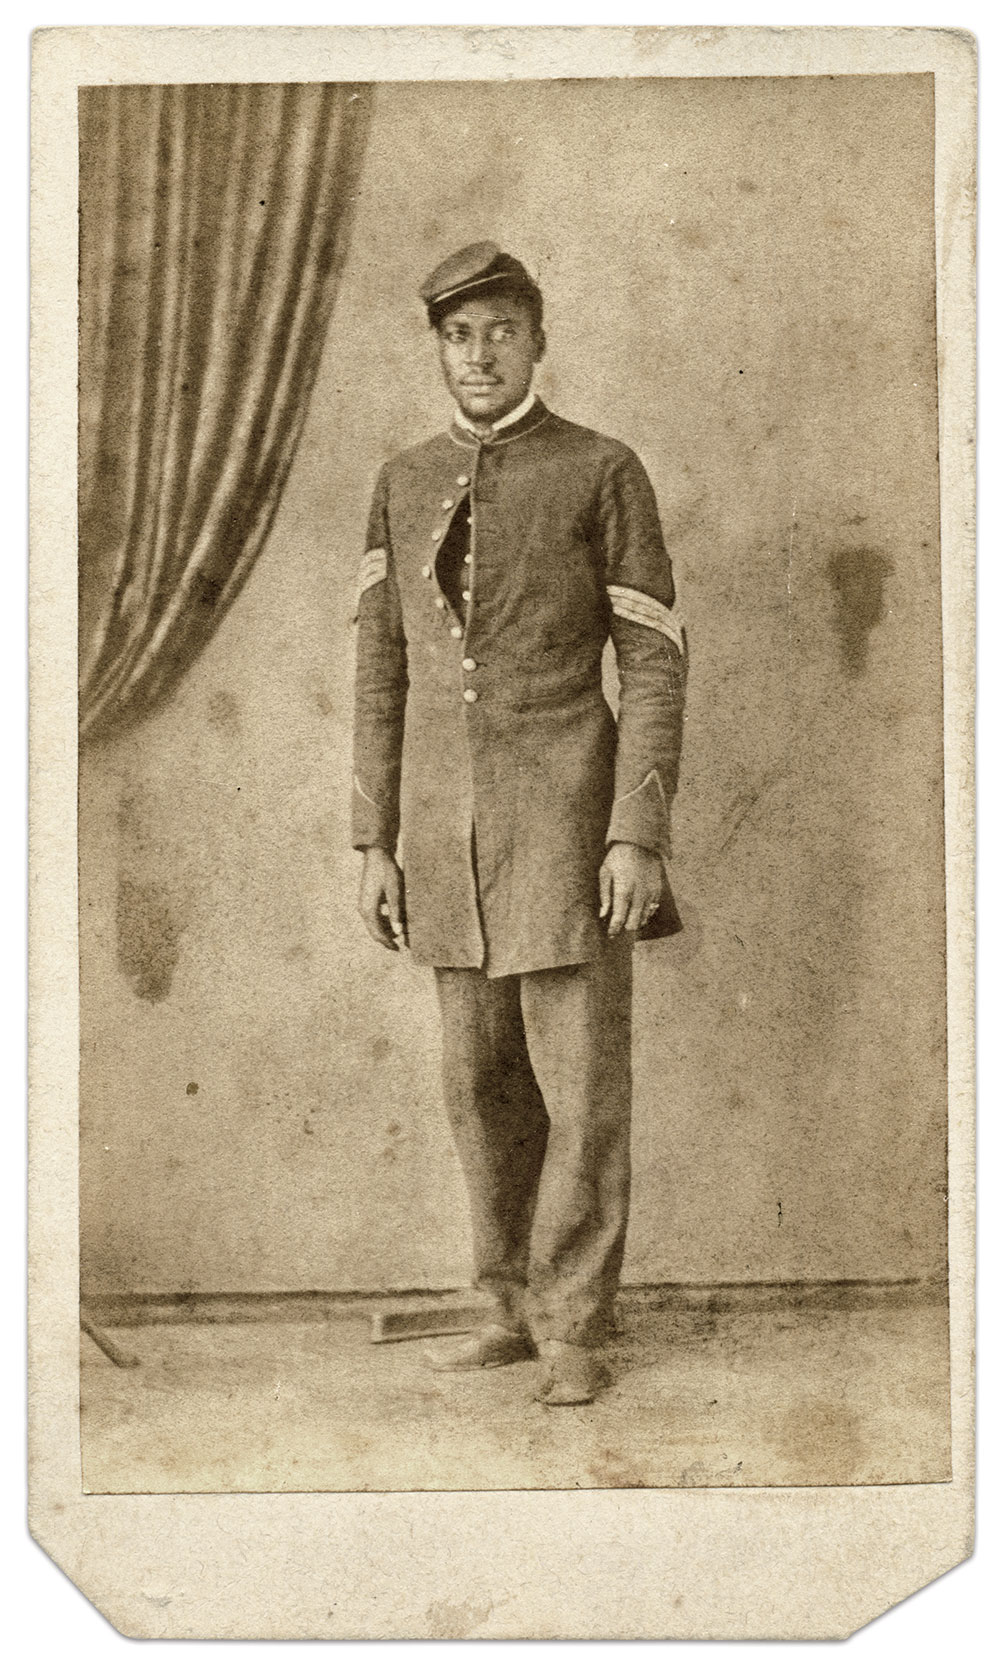 Carte de visite by A.L. Fellers of Lancaster, Ohio. David and Diana Lemaster Collection.